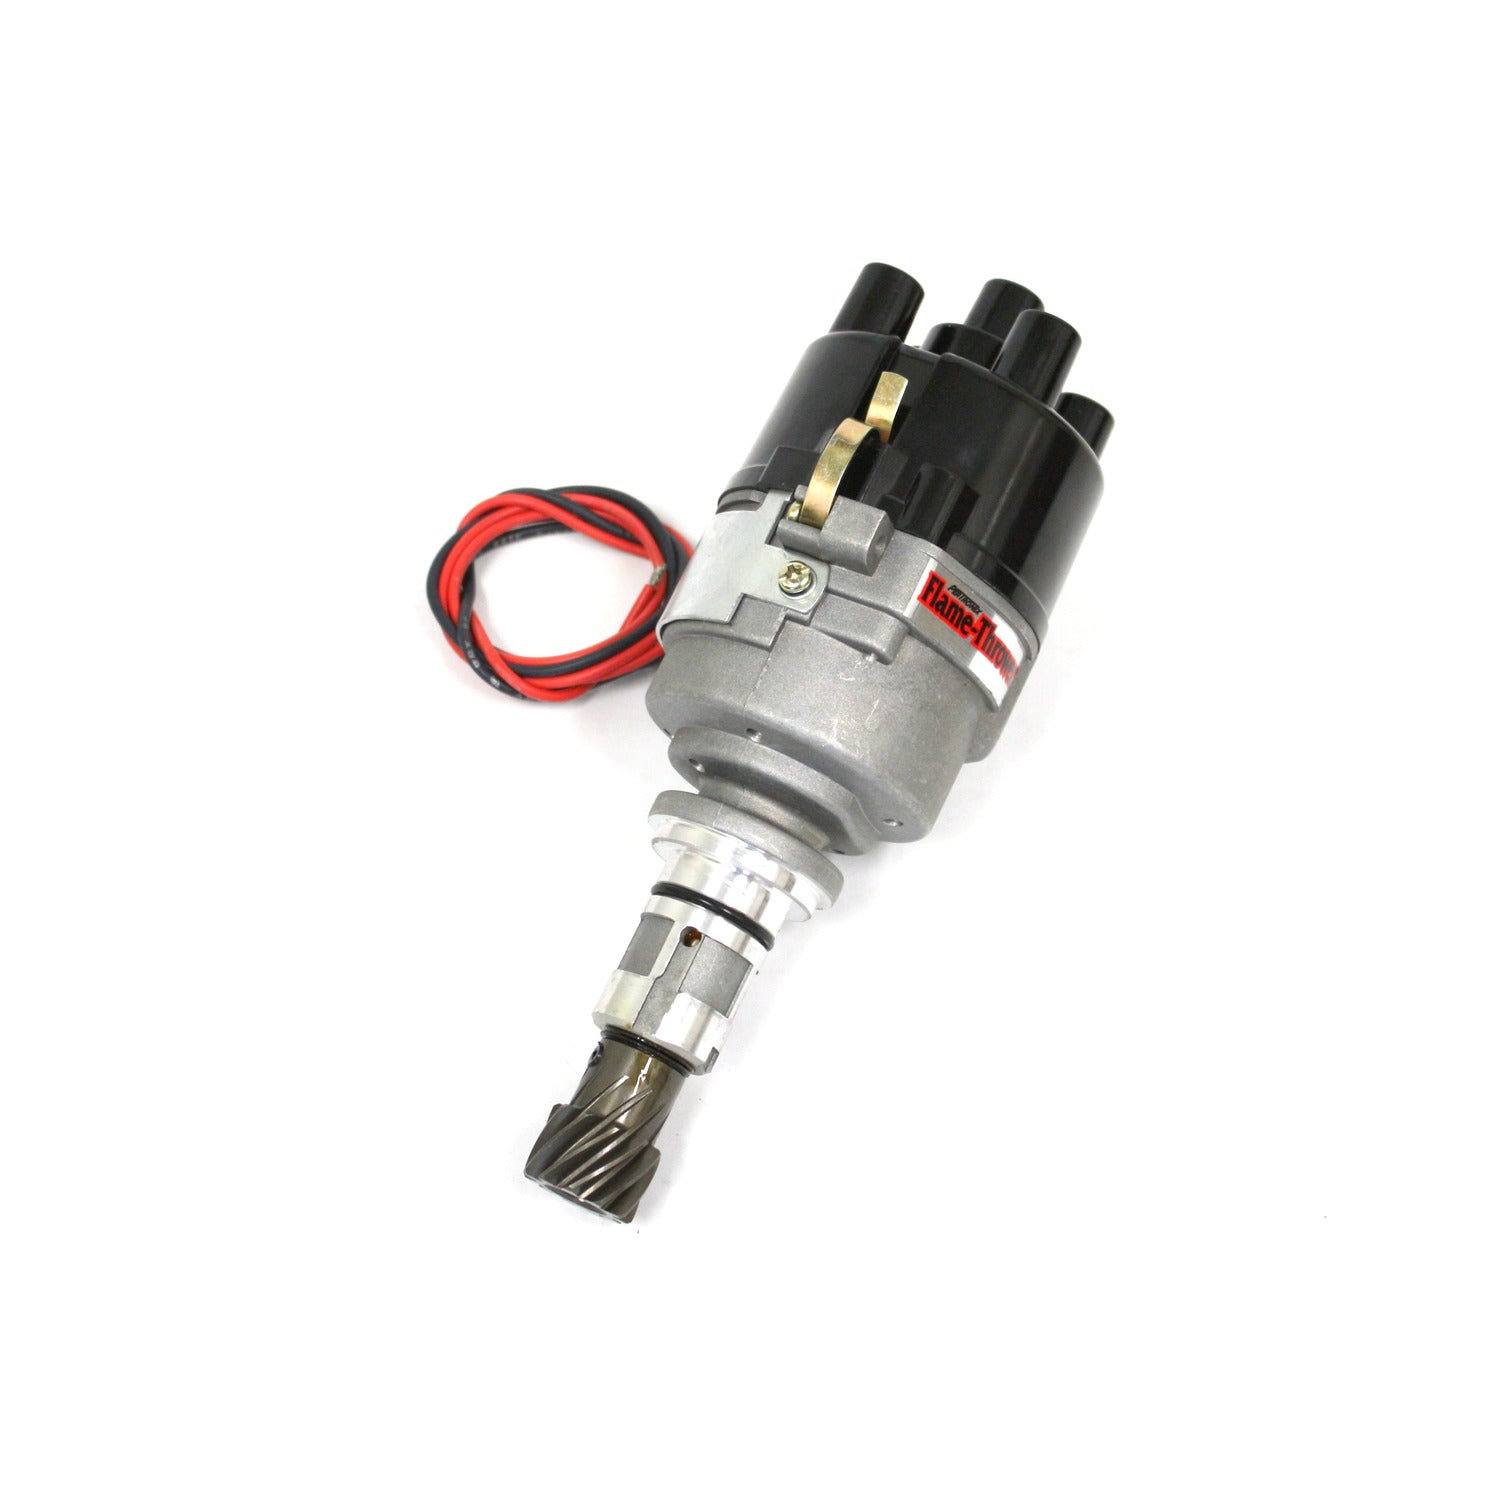 PerTronix D7190500 Flame-Thrower Electronic Distributor Top Exit Cast Ford X-Flow Plug and Play with Ignitor III Non Vac Adv